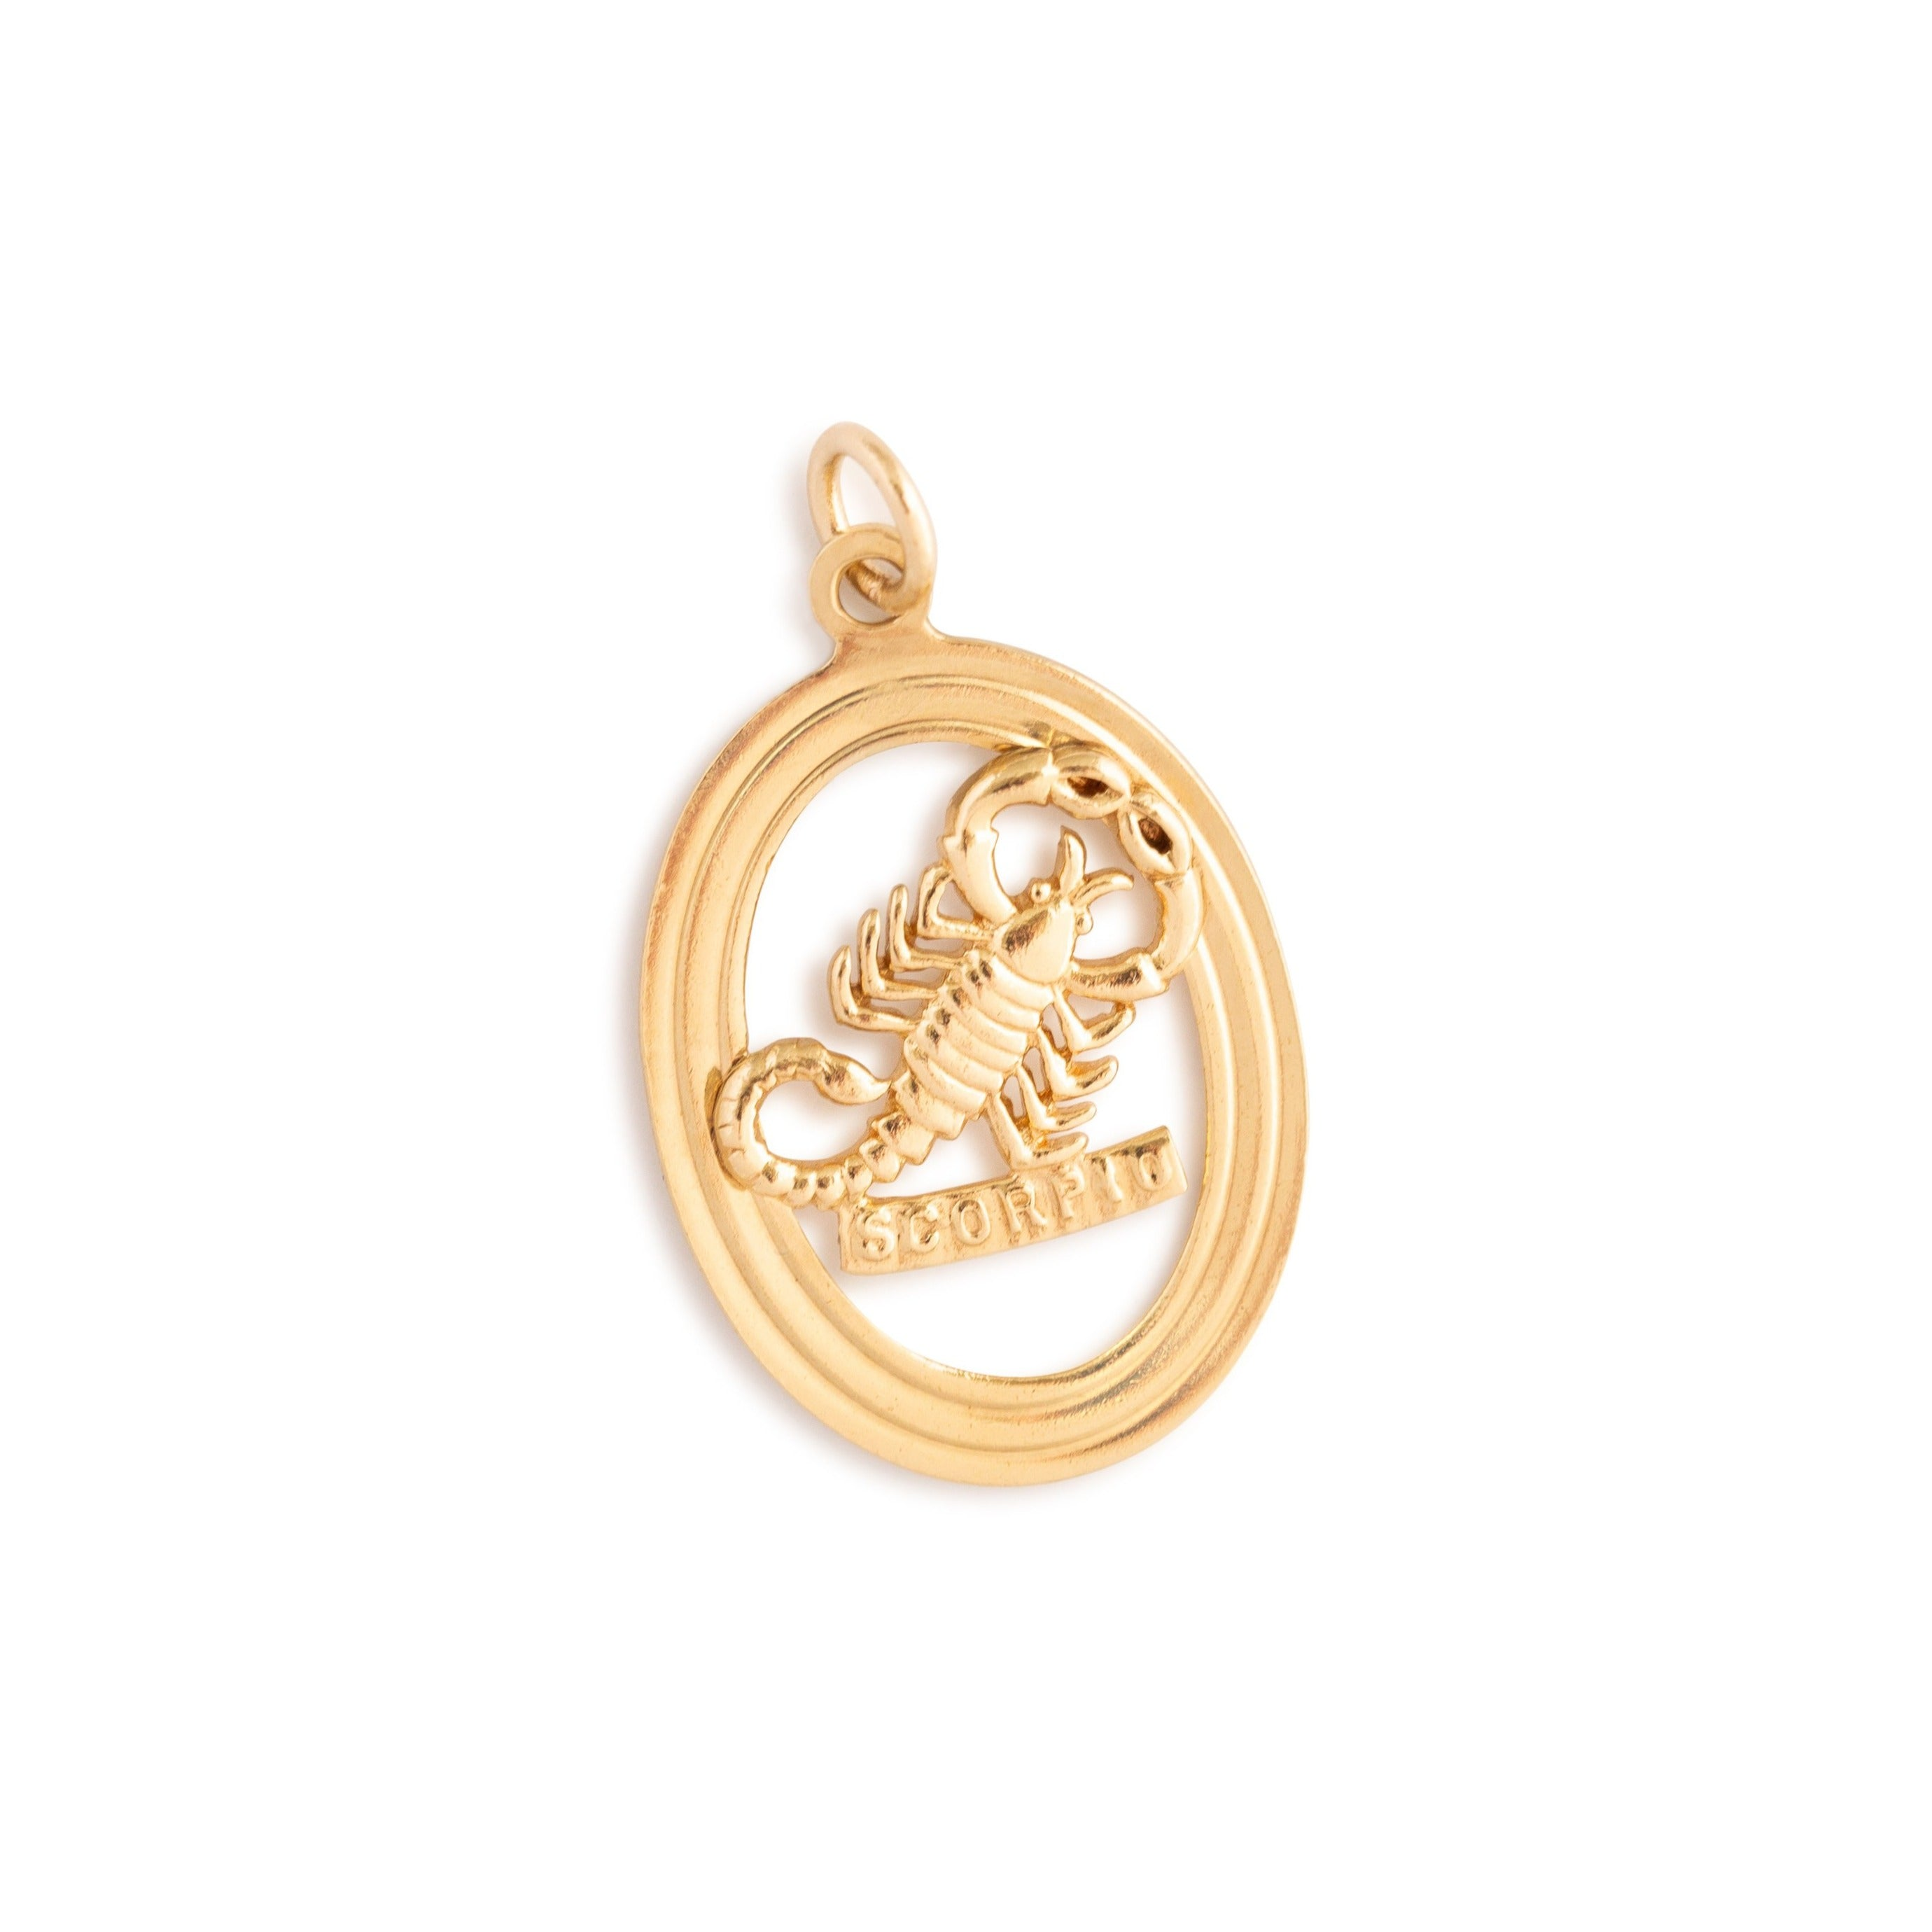 English Scorpio 9k Gold Oval Zodiac Charm